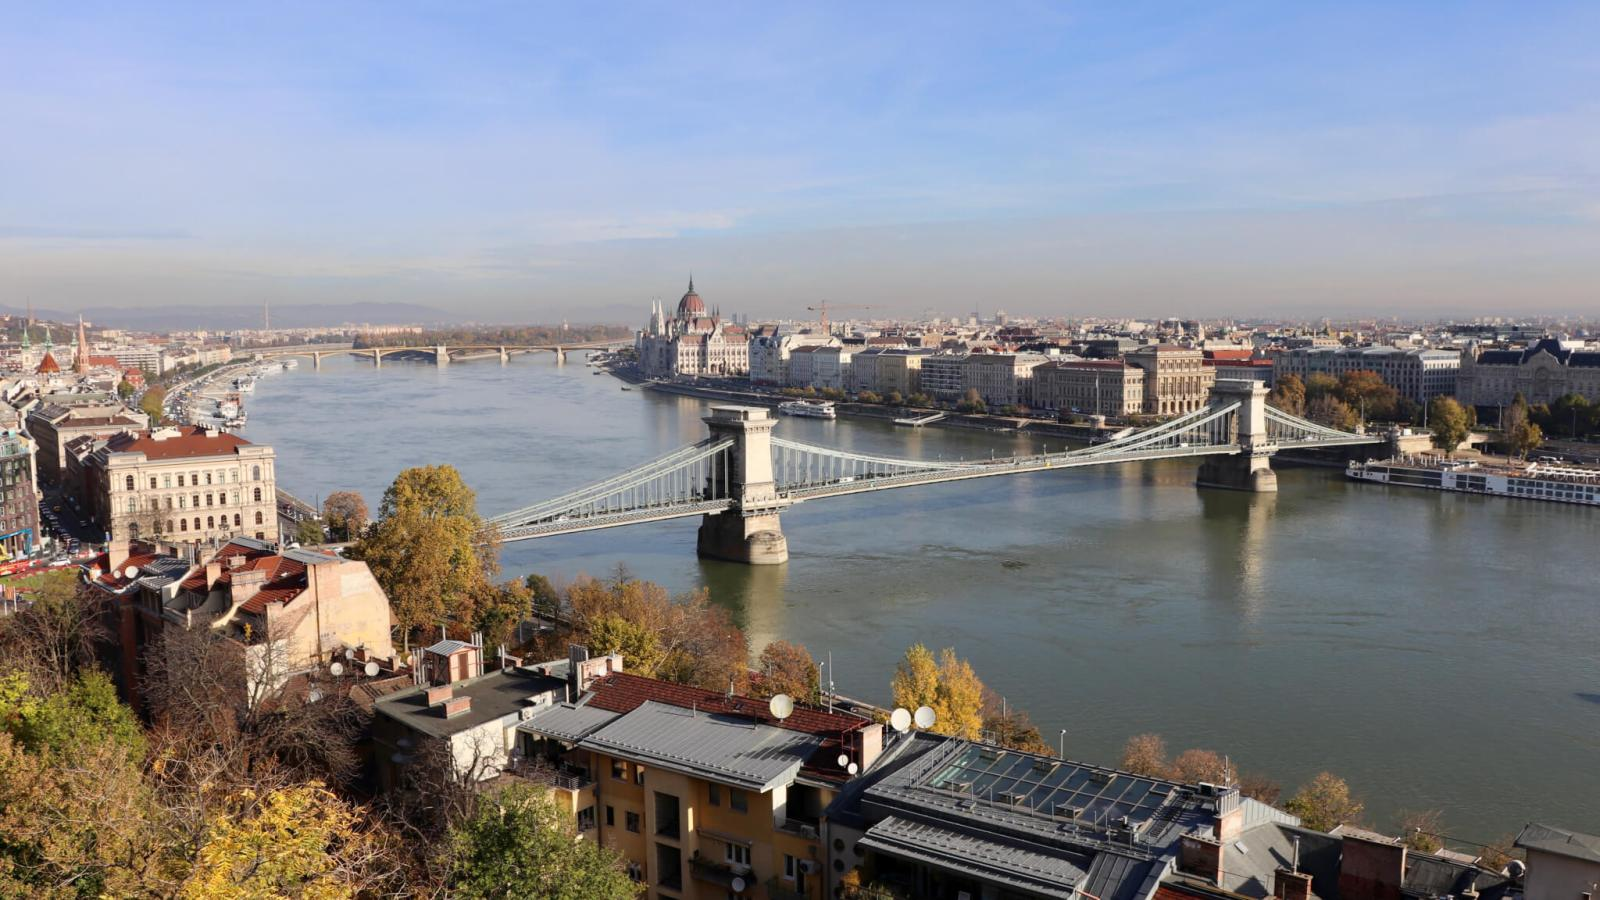 City view of Budapest, with Danube River and bridges